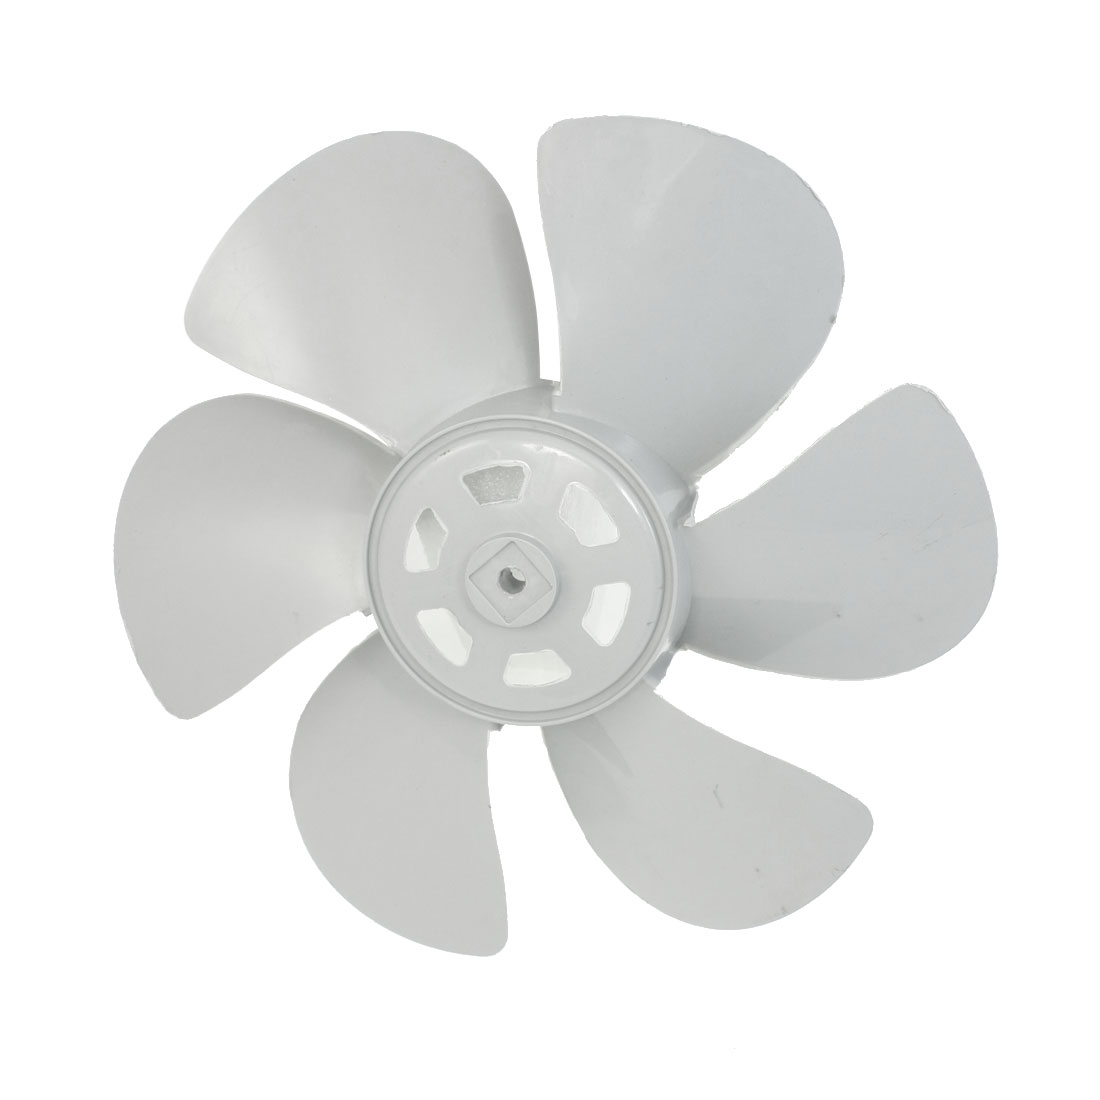 "Exaust Ventilator Motor 8mm Shaft Hole 12"" Plastic Fan Vane"